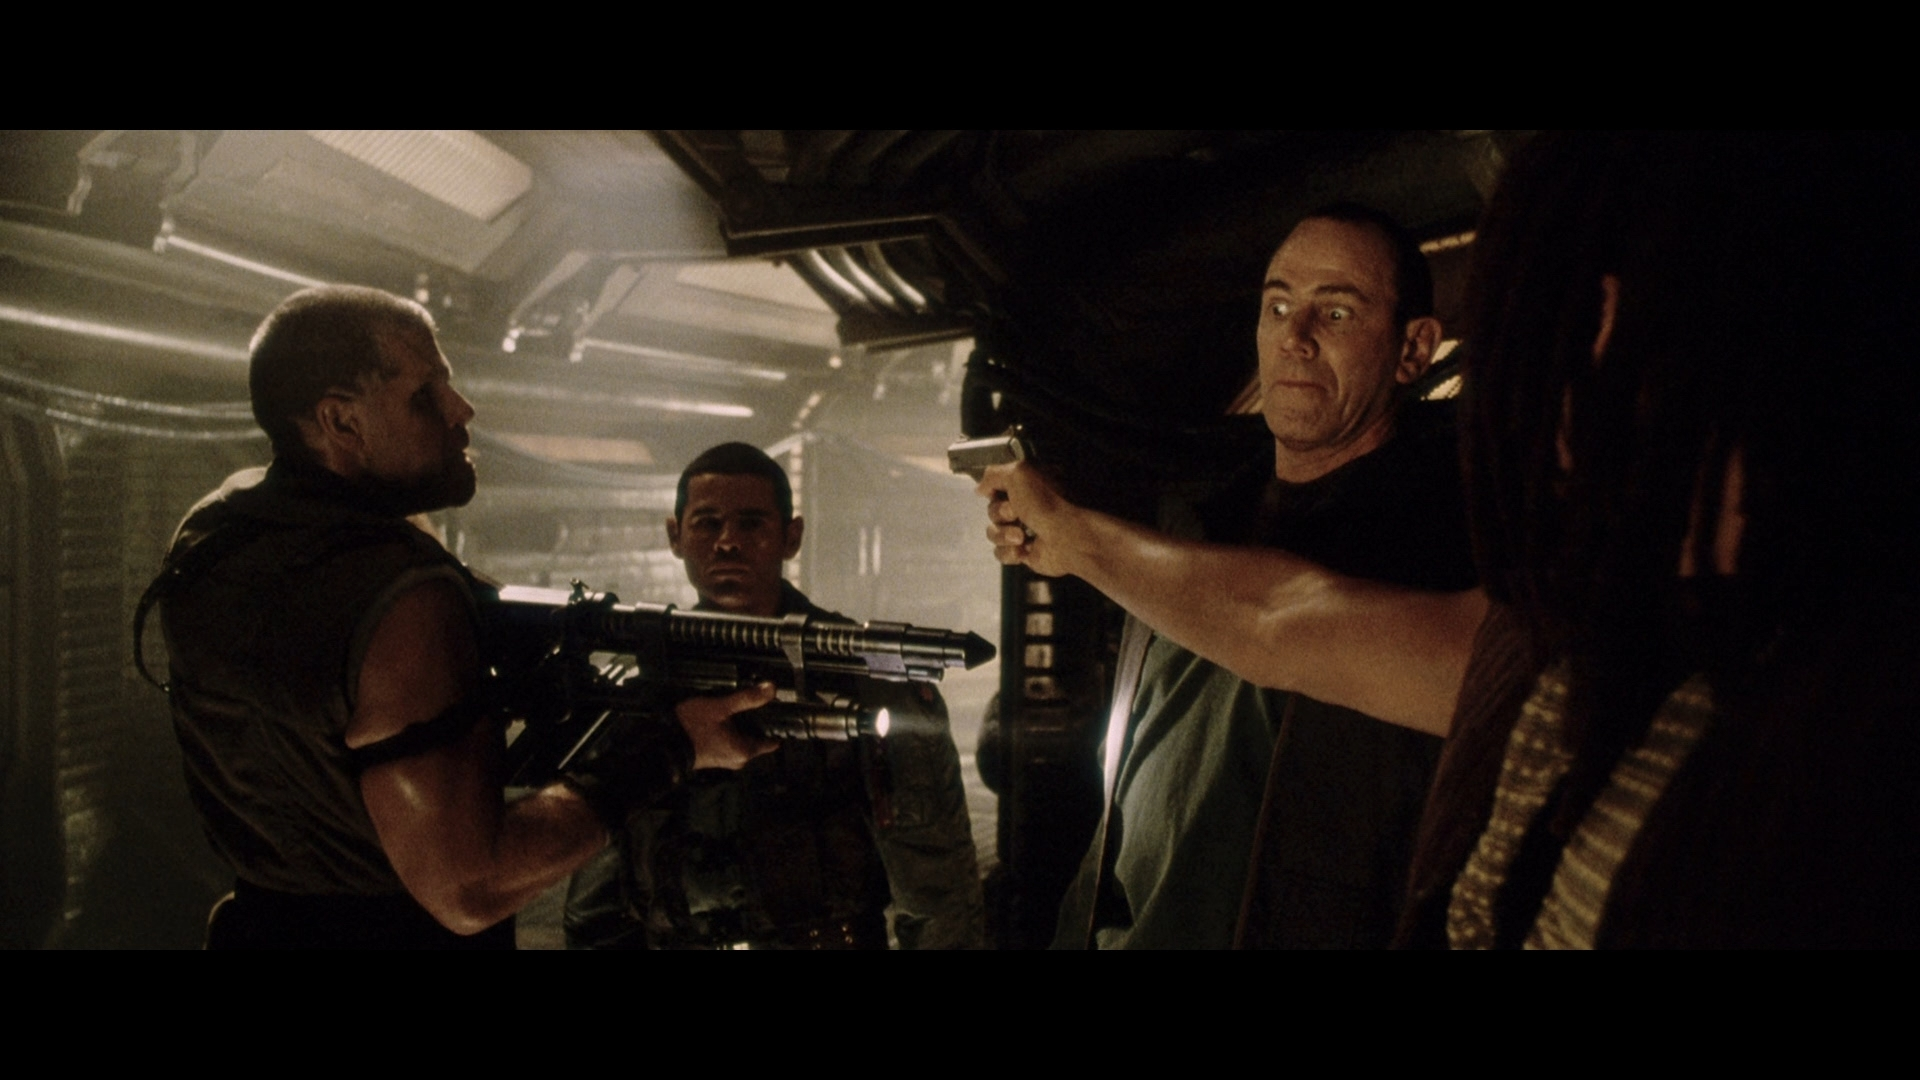 ALIEN RESURRECTION (1997) - Light-Up AR-2 Rifle - Image 15 of 19